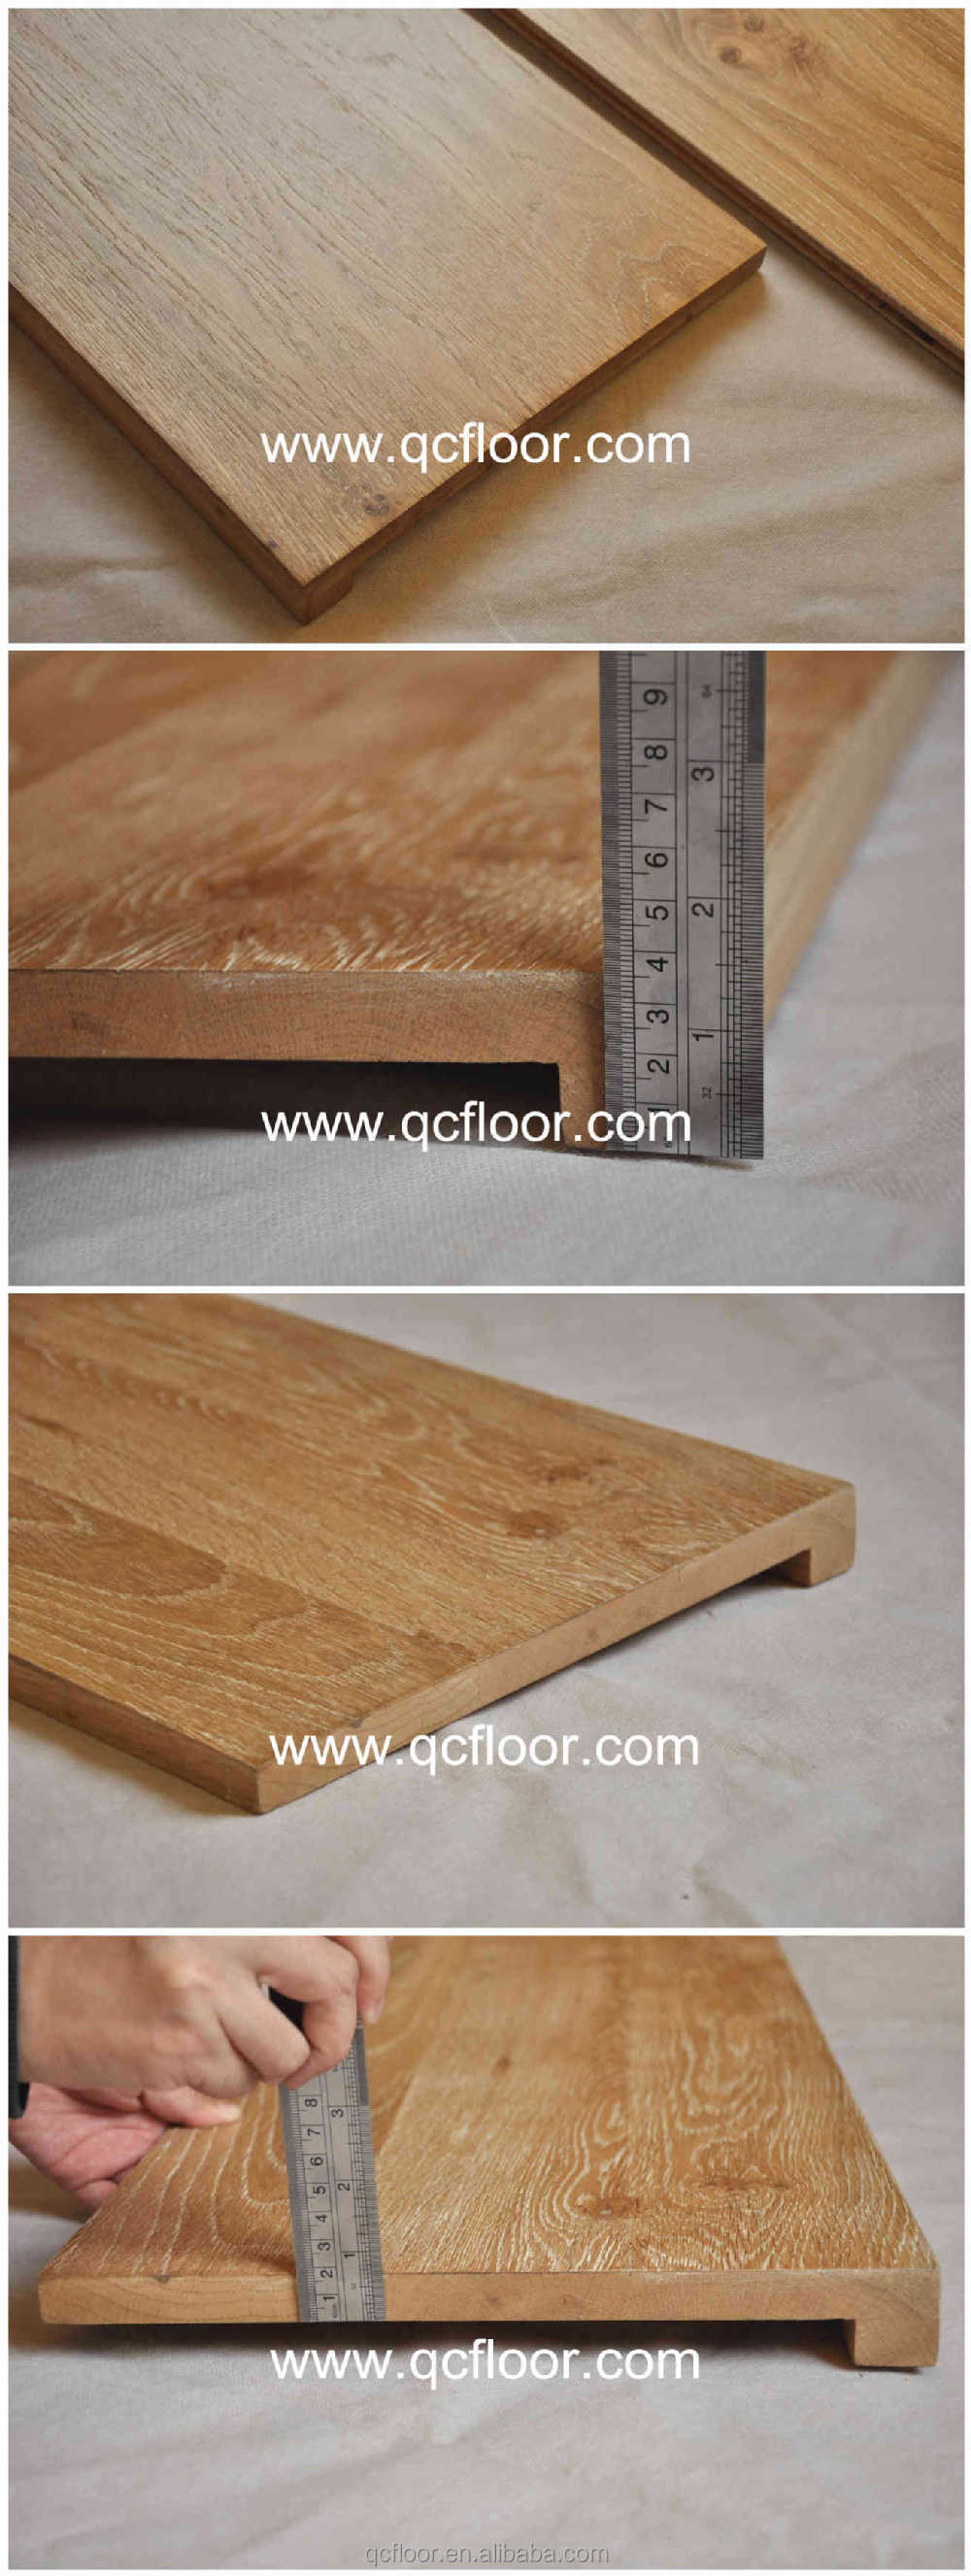 High Quality White Oak Solid Wood Stair Tread Finger Jointed Stair Treads Buy Decorative Stair Tread Stair Treads Product On Alibaba Com